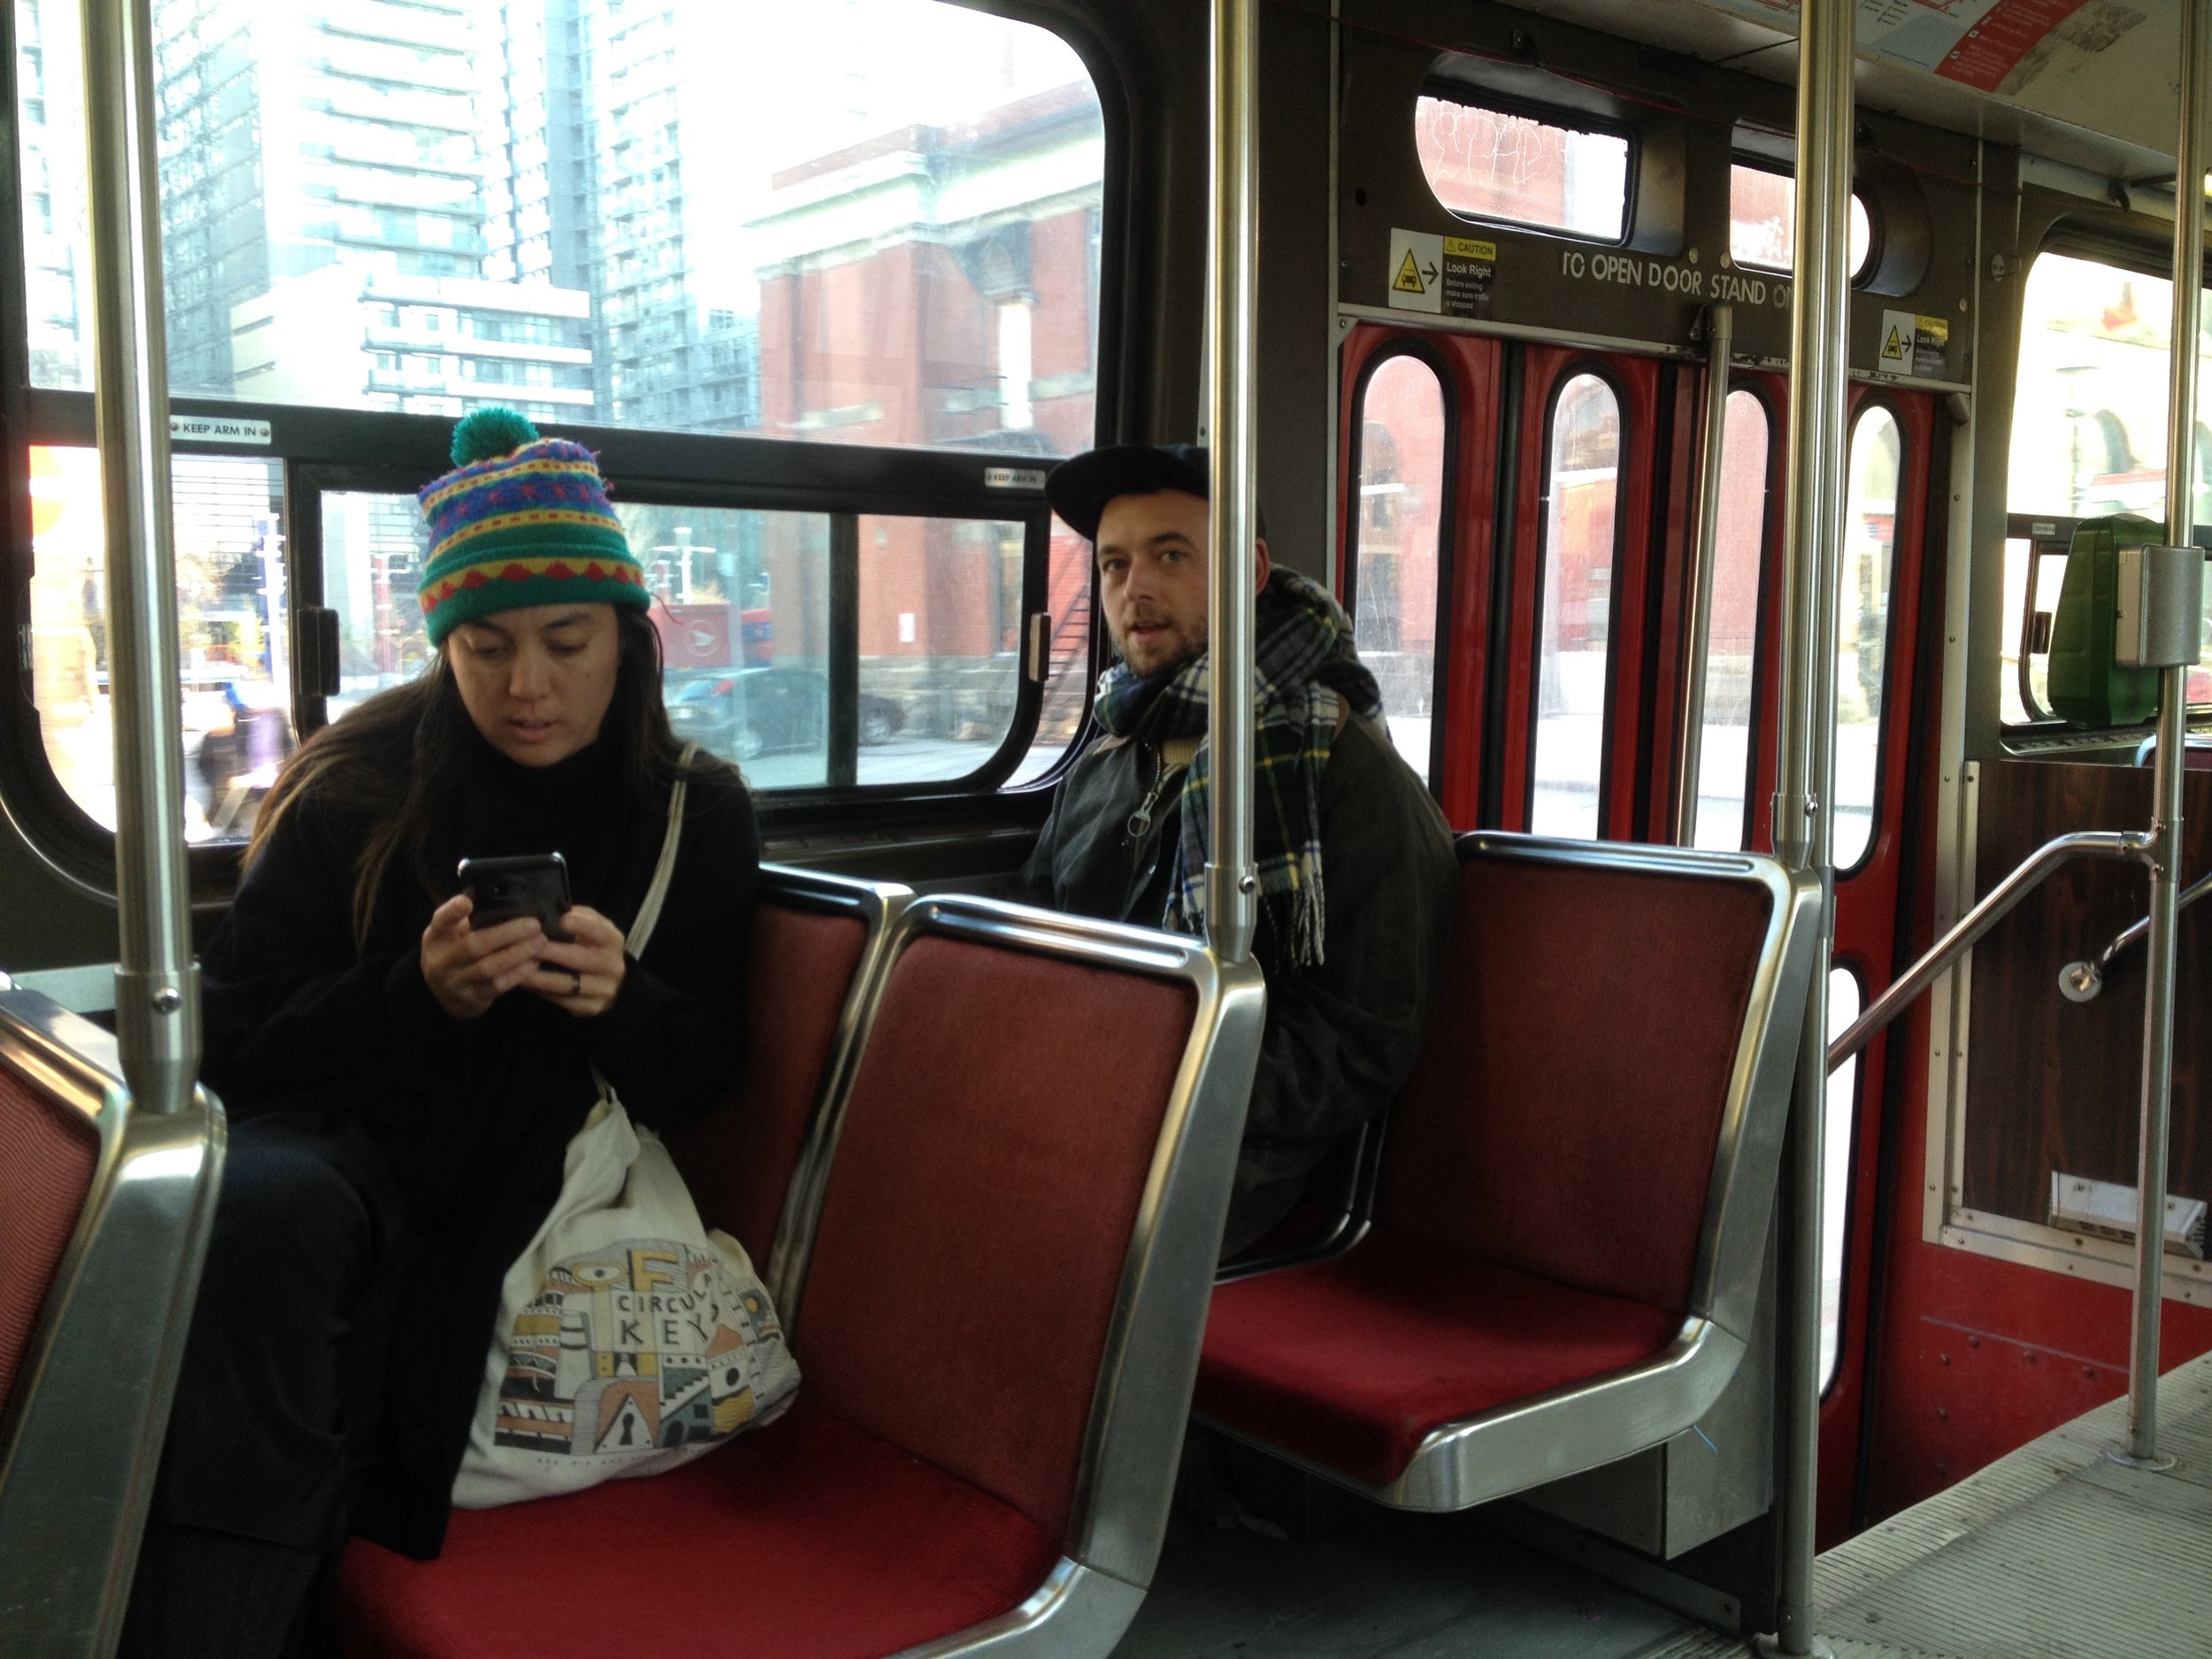 We flew into a cold mid-spring Toronto. The trams were called streetcars.